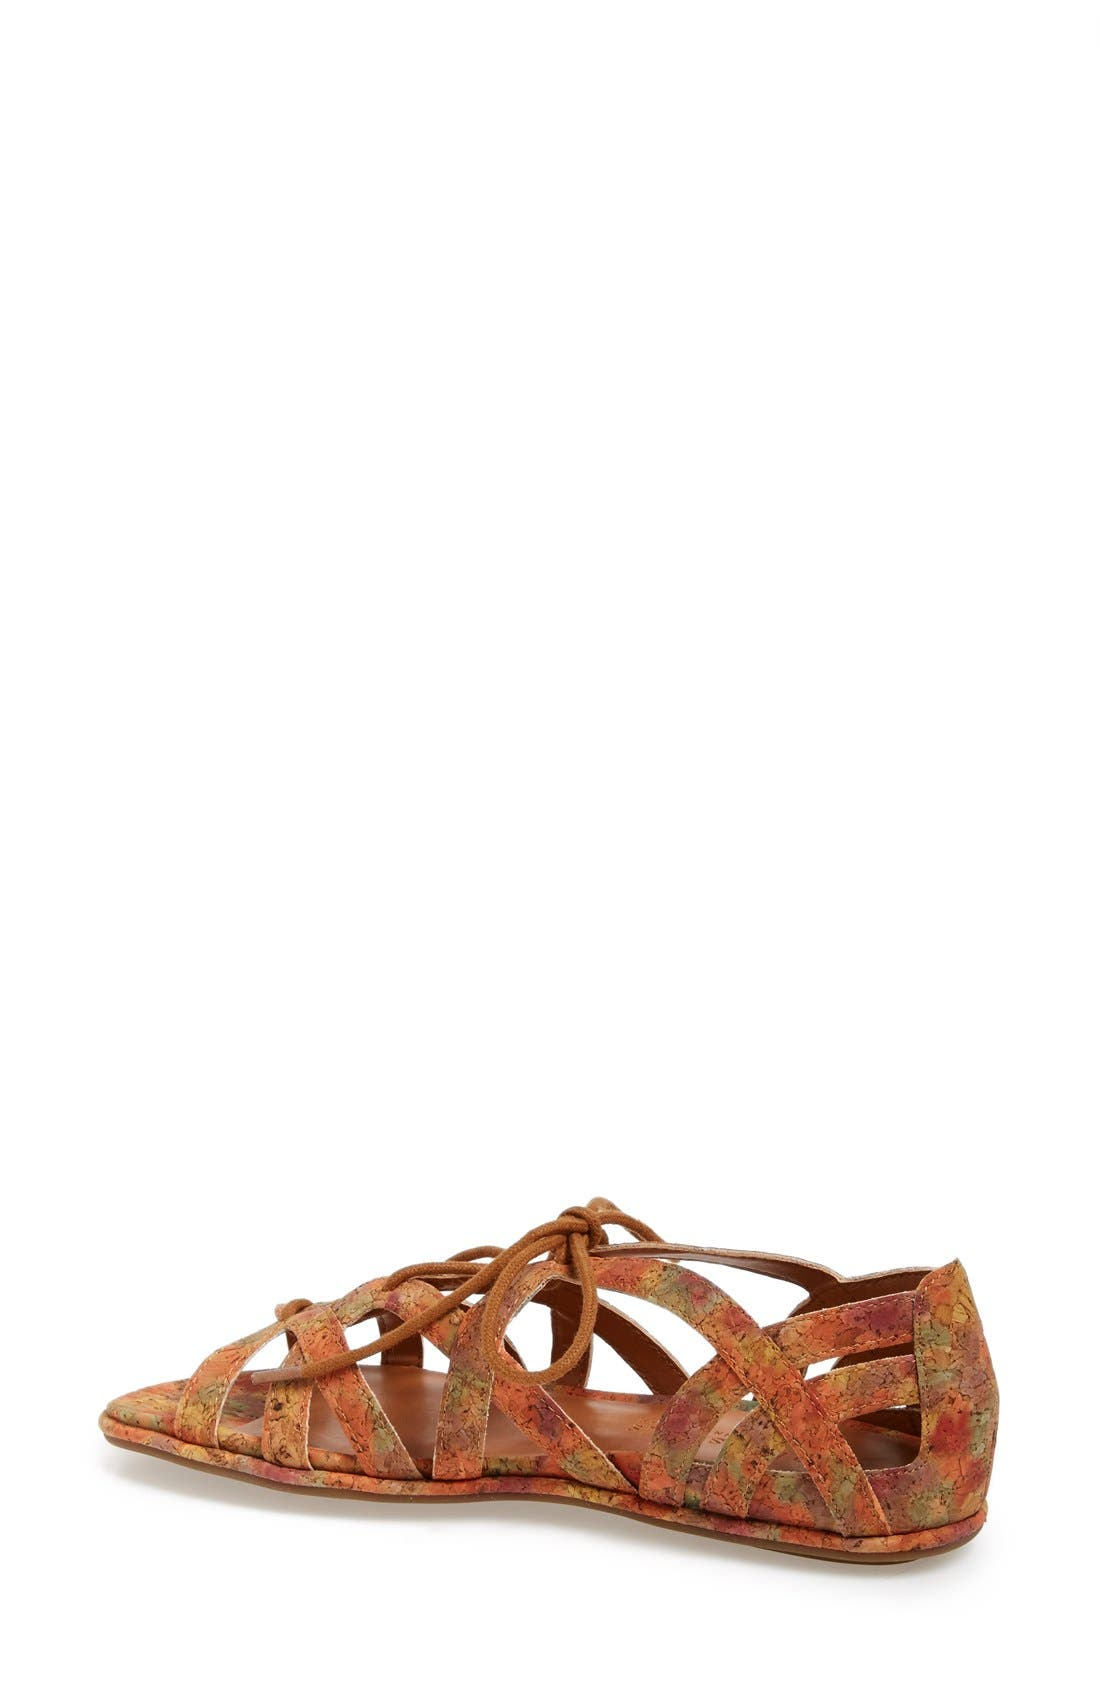 'Orly' Lace-Up Sandal,                             Alternate thumbnail 5, color,                             Natural/ Floral Cork